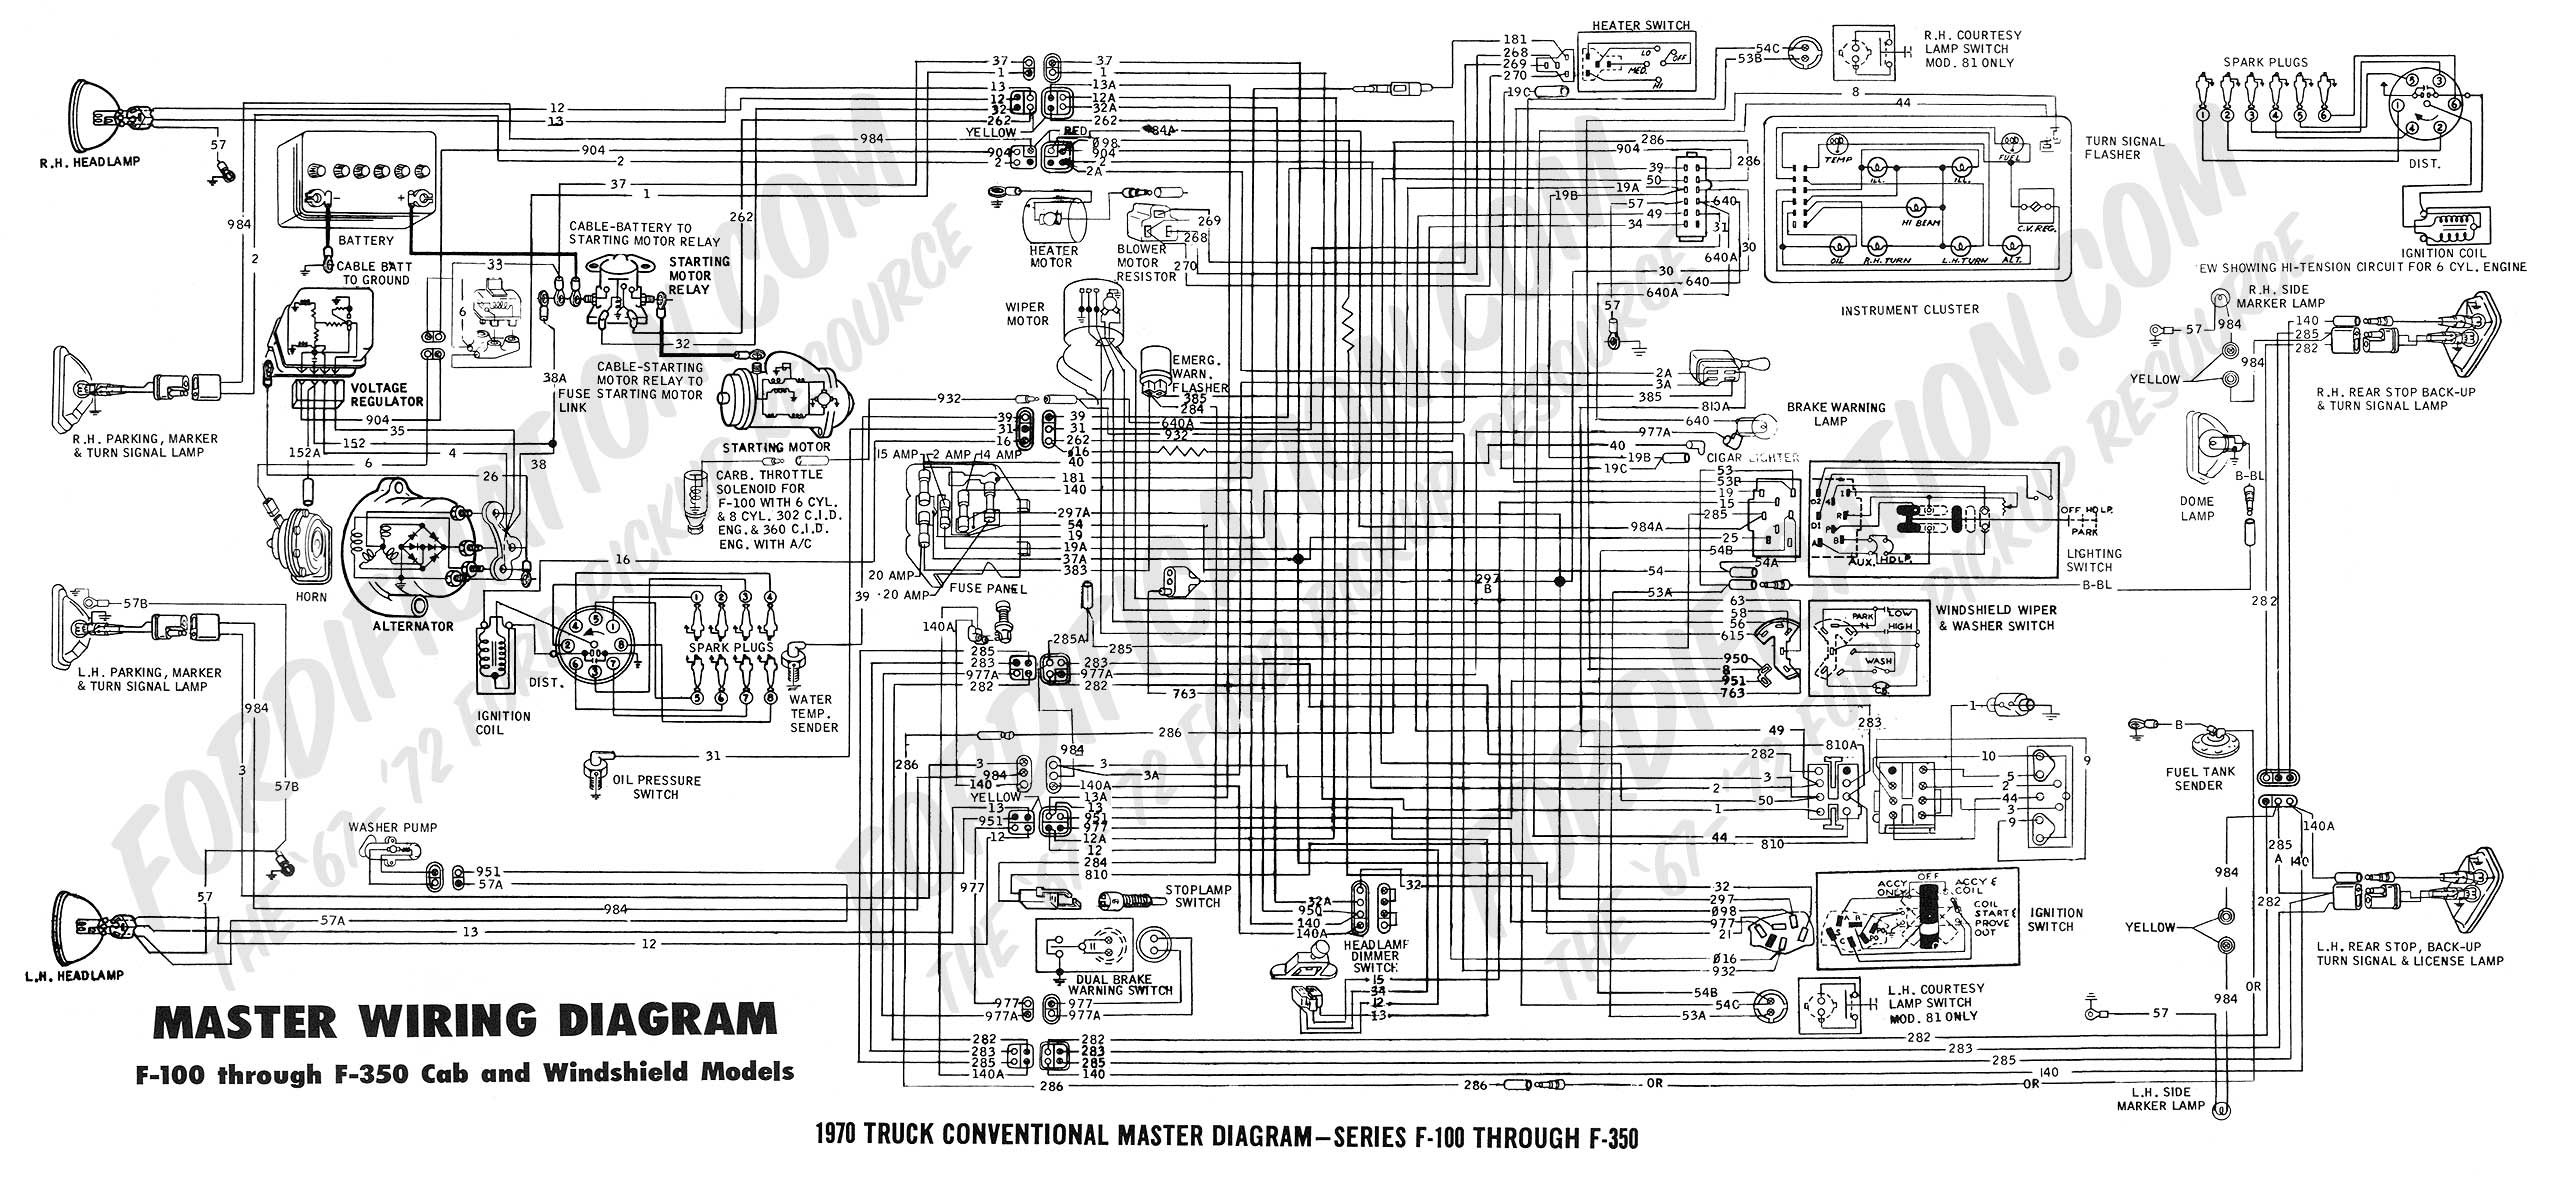 wiring diagram 70_master wiring diagram for 2007 freightliner columbia ireleast Wiring Harness Diagram at edmiracle.co